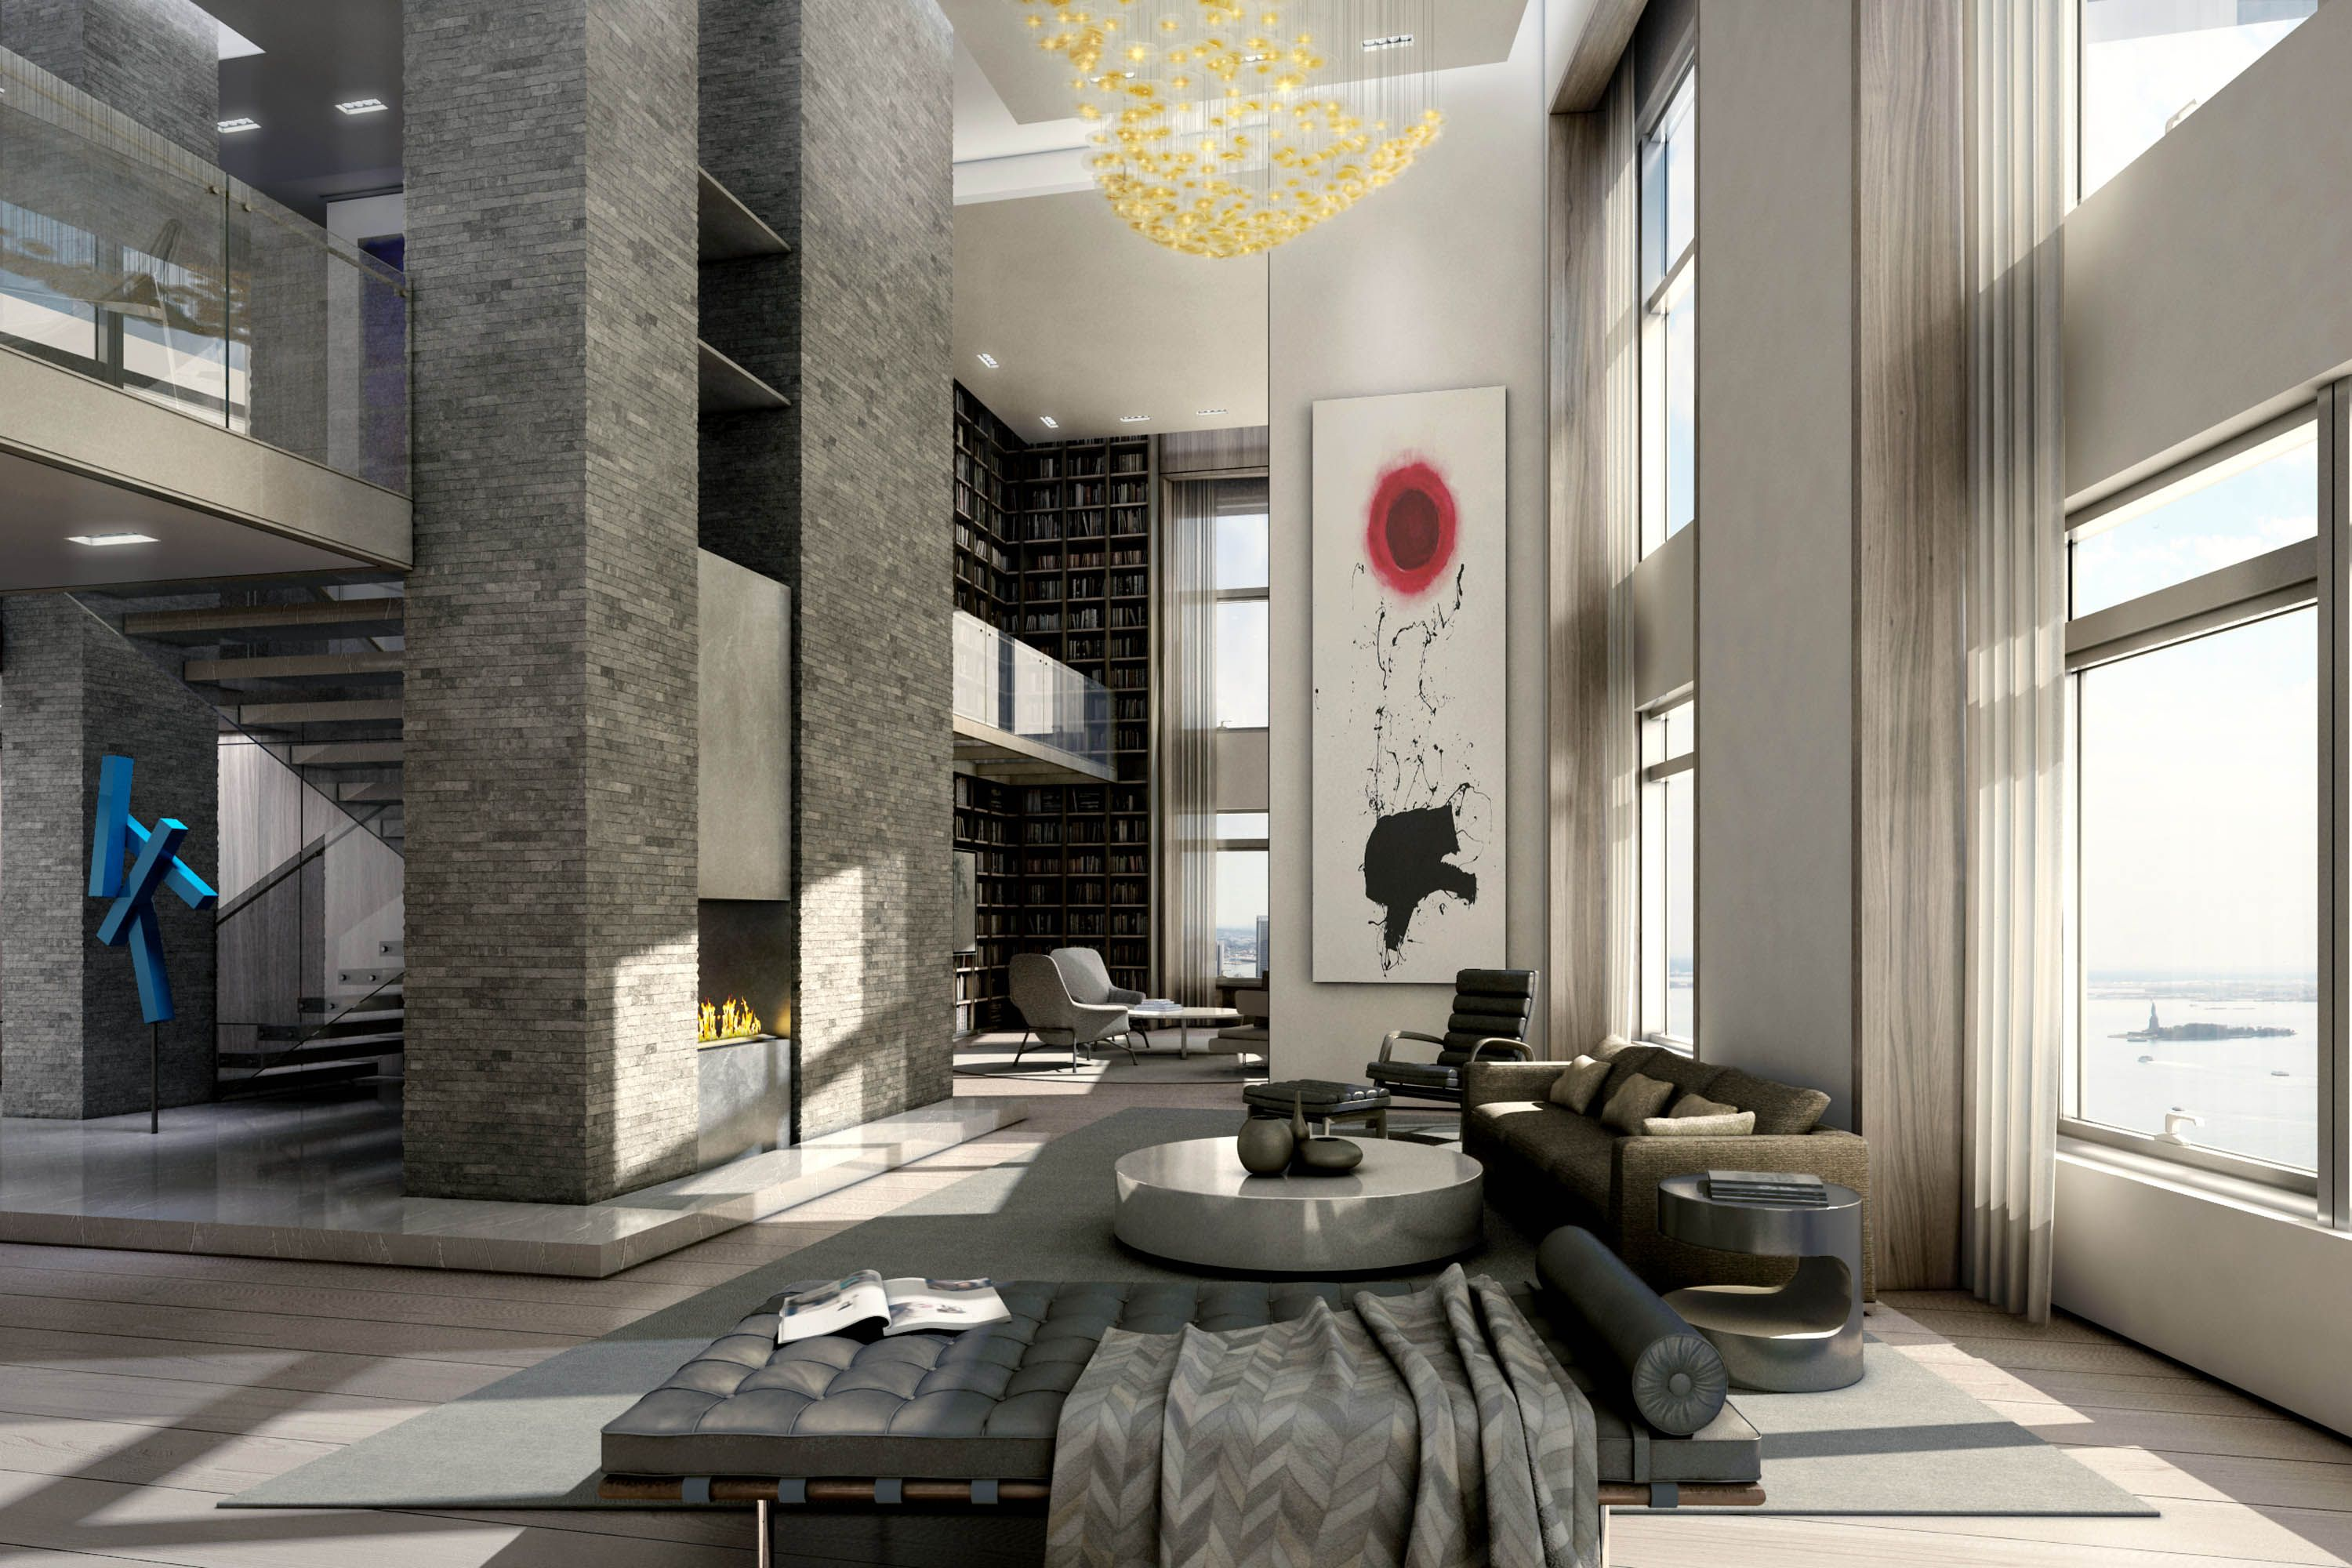 Apartment Pricey Luxury Penthouse In New York As Urban Living